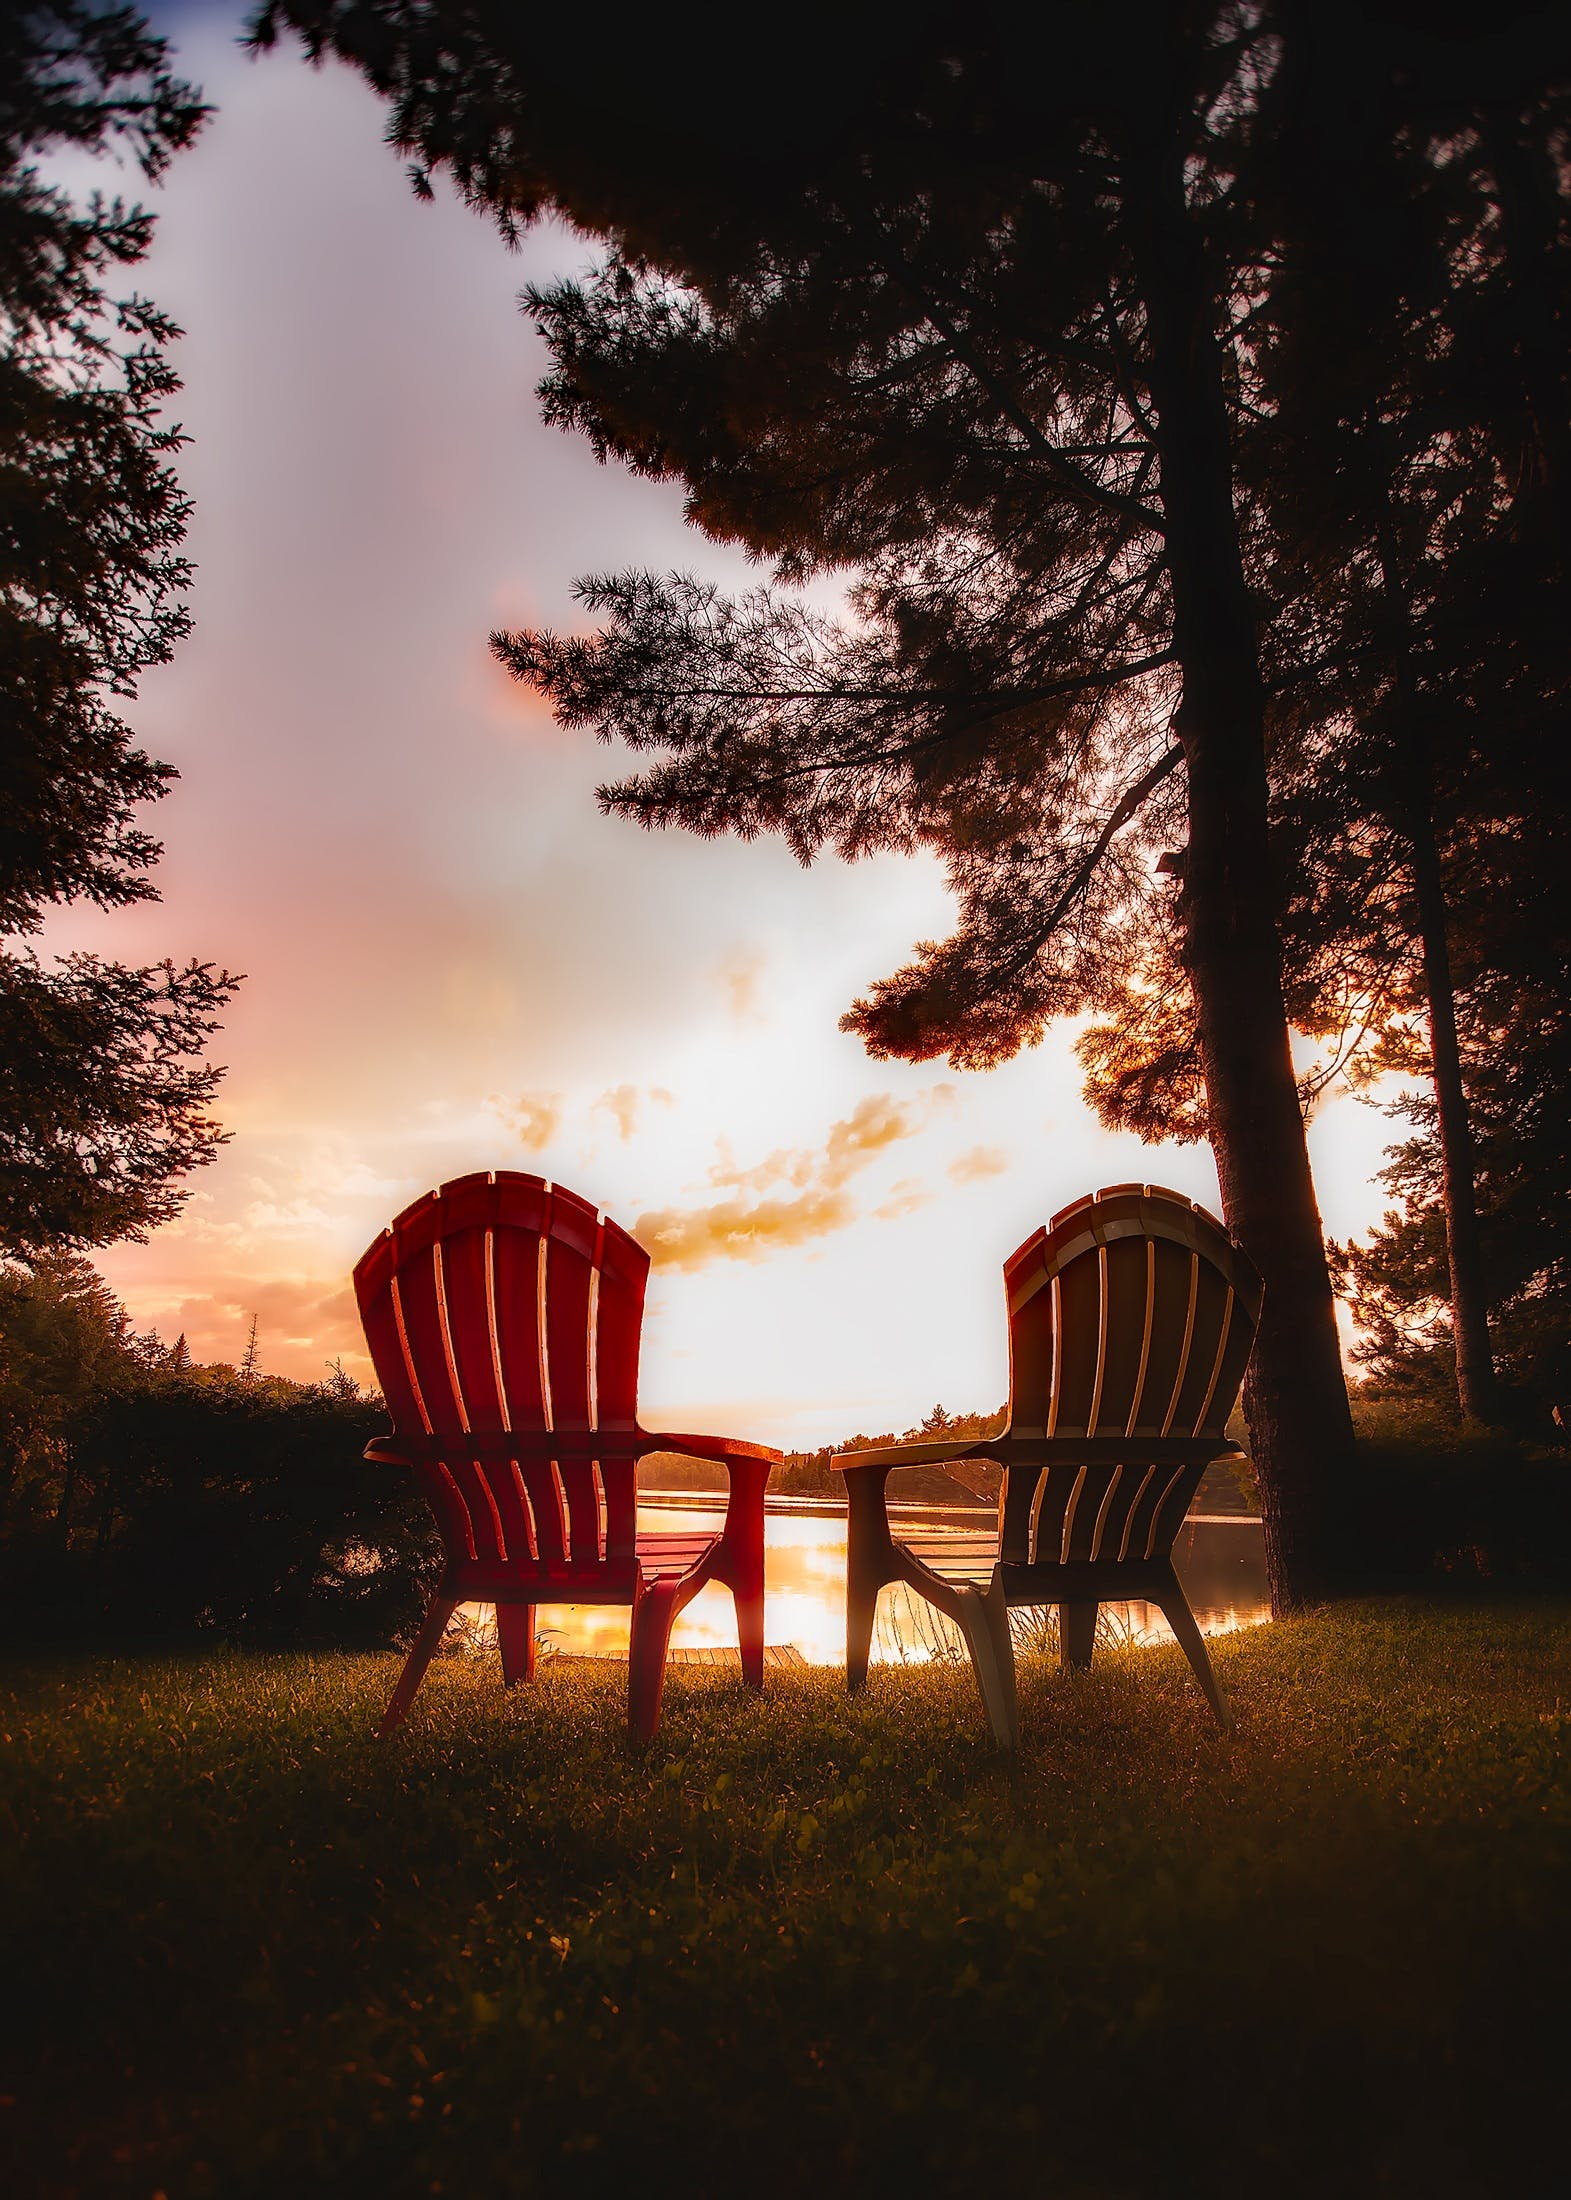 Chairs on Table Against Trees during Sunset